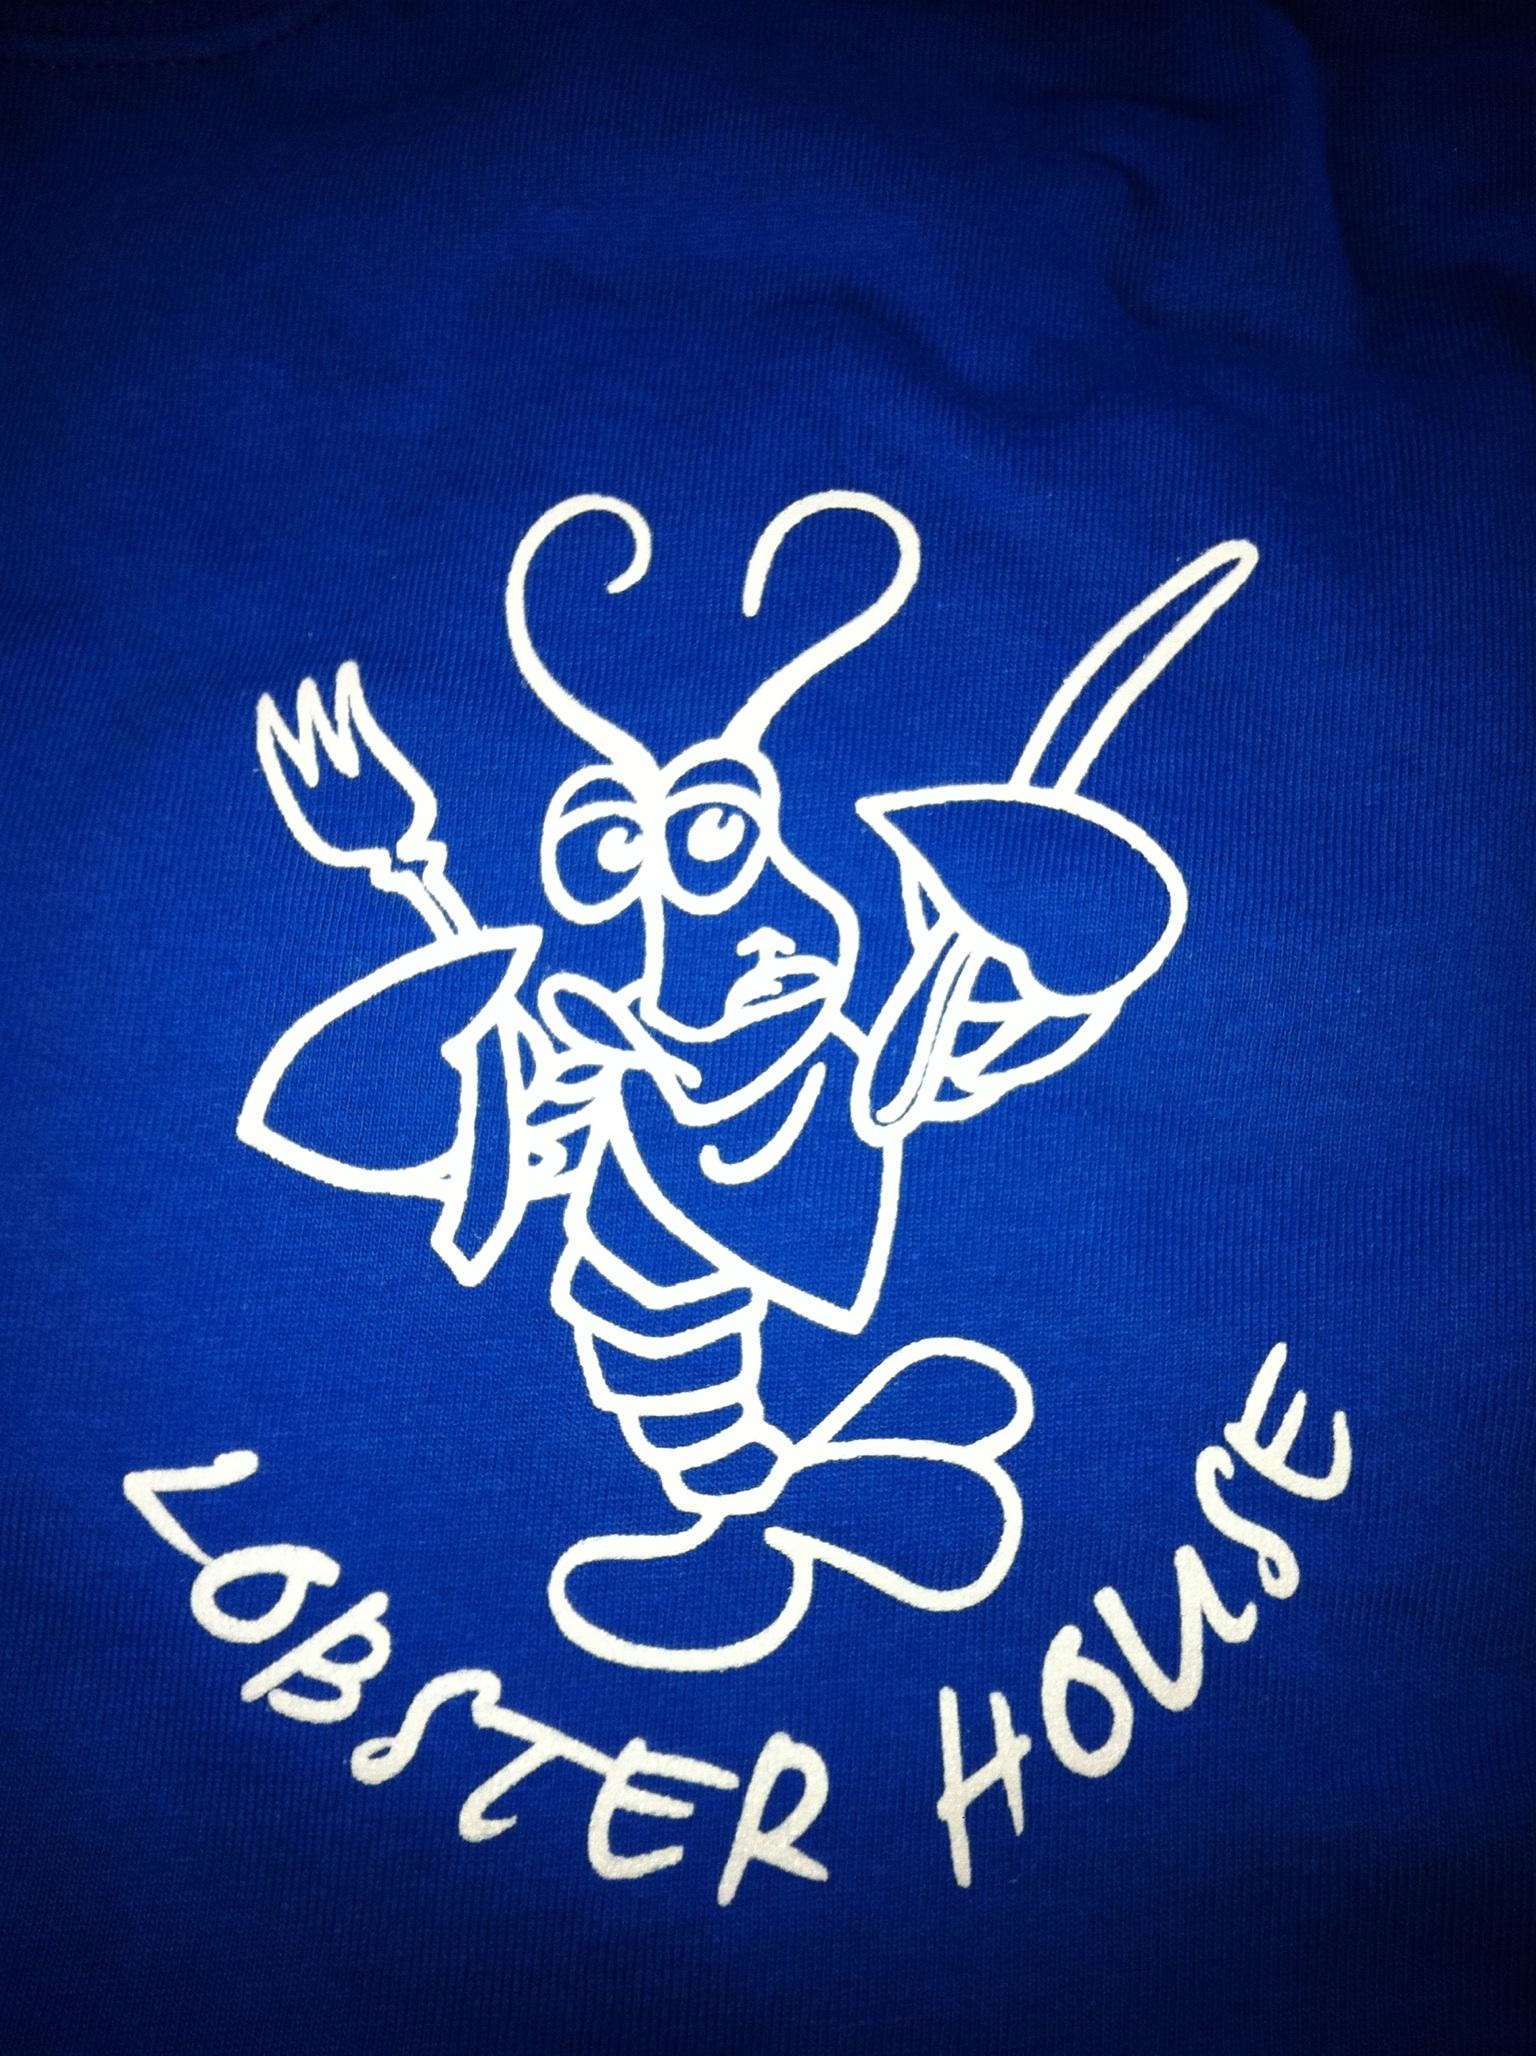 Lobster House Freehold | Lobster House